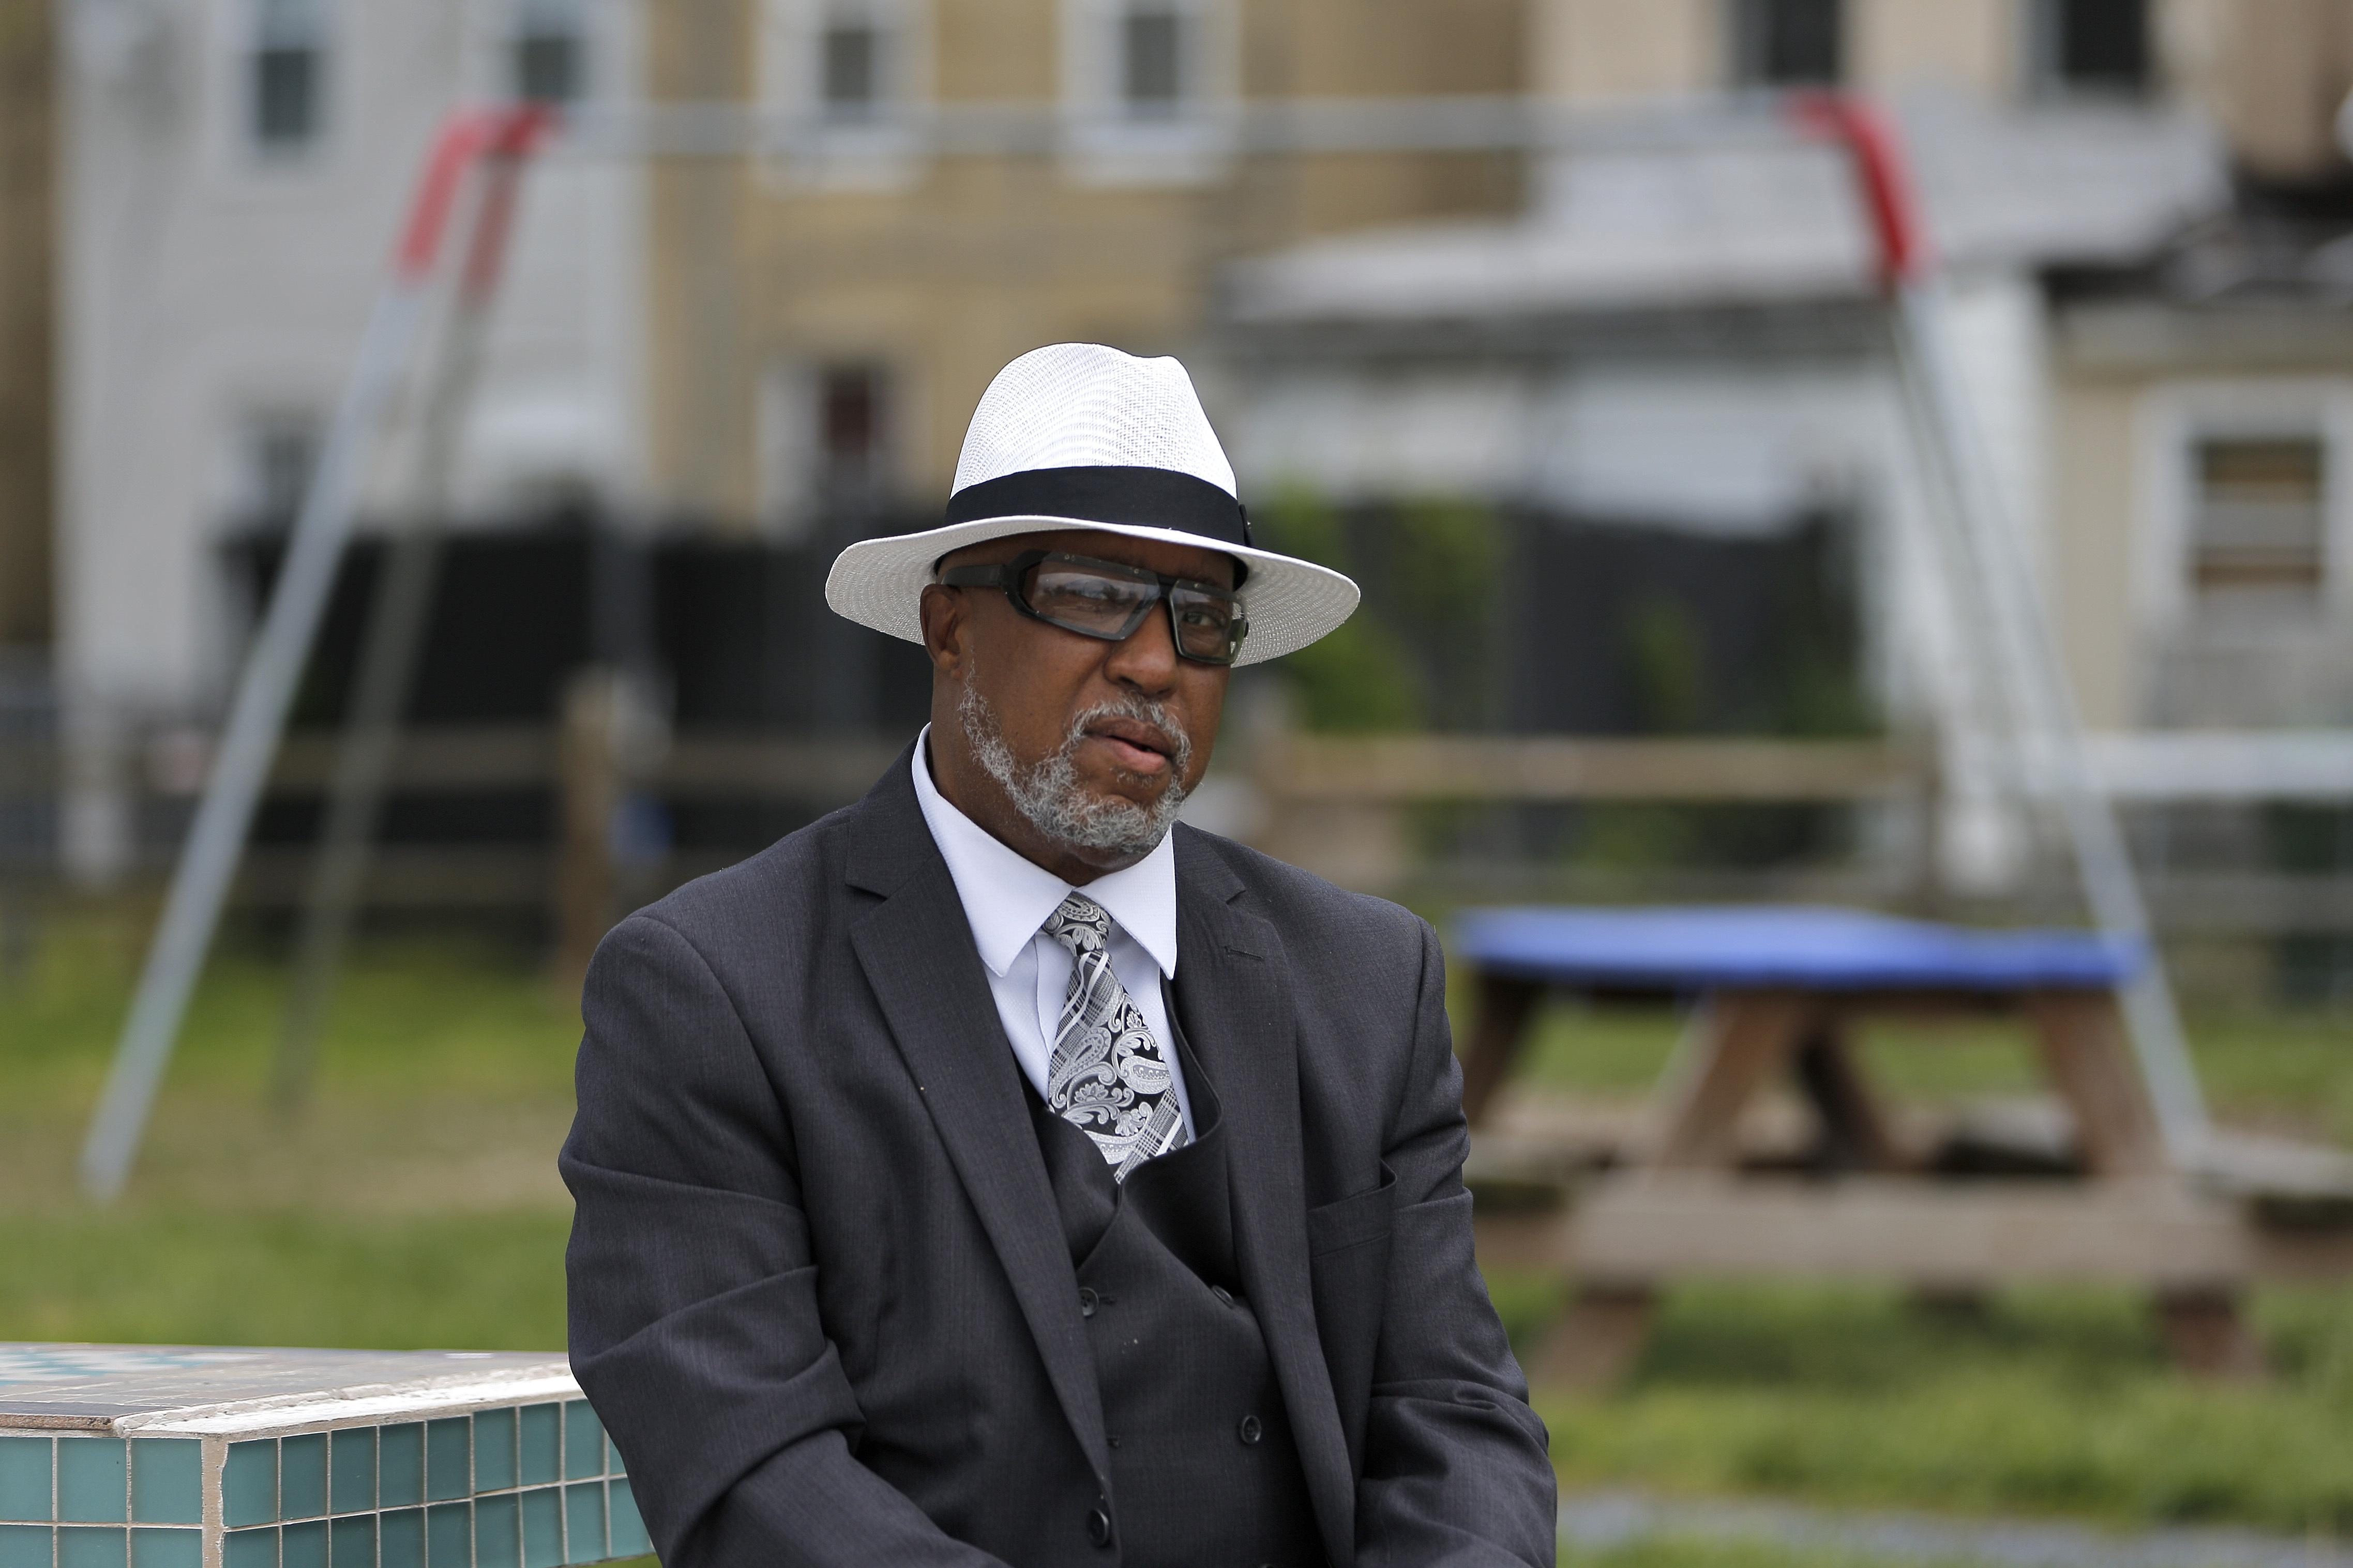 In this April 29, 2020 photo, Marvin L. Cheatham Sr., who led his local NAACP chapter in the 1990s, poses in the park he built in West Baltimore following the riots sparked from the 2015 arrest of Freddie Gray.